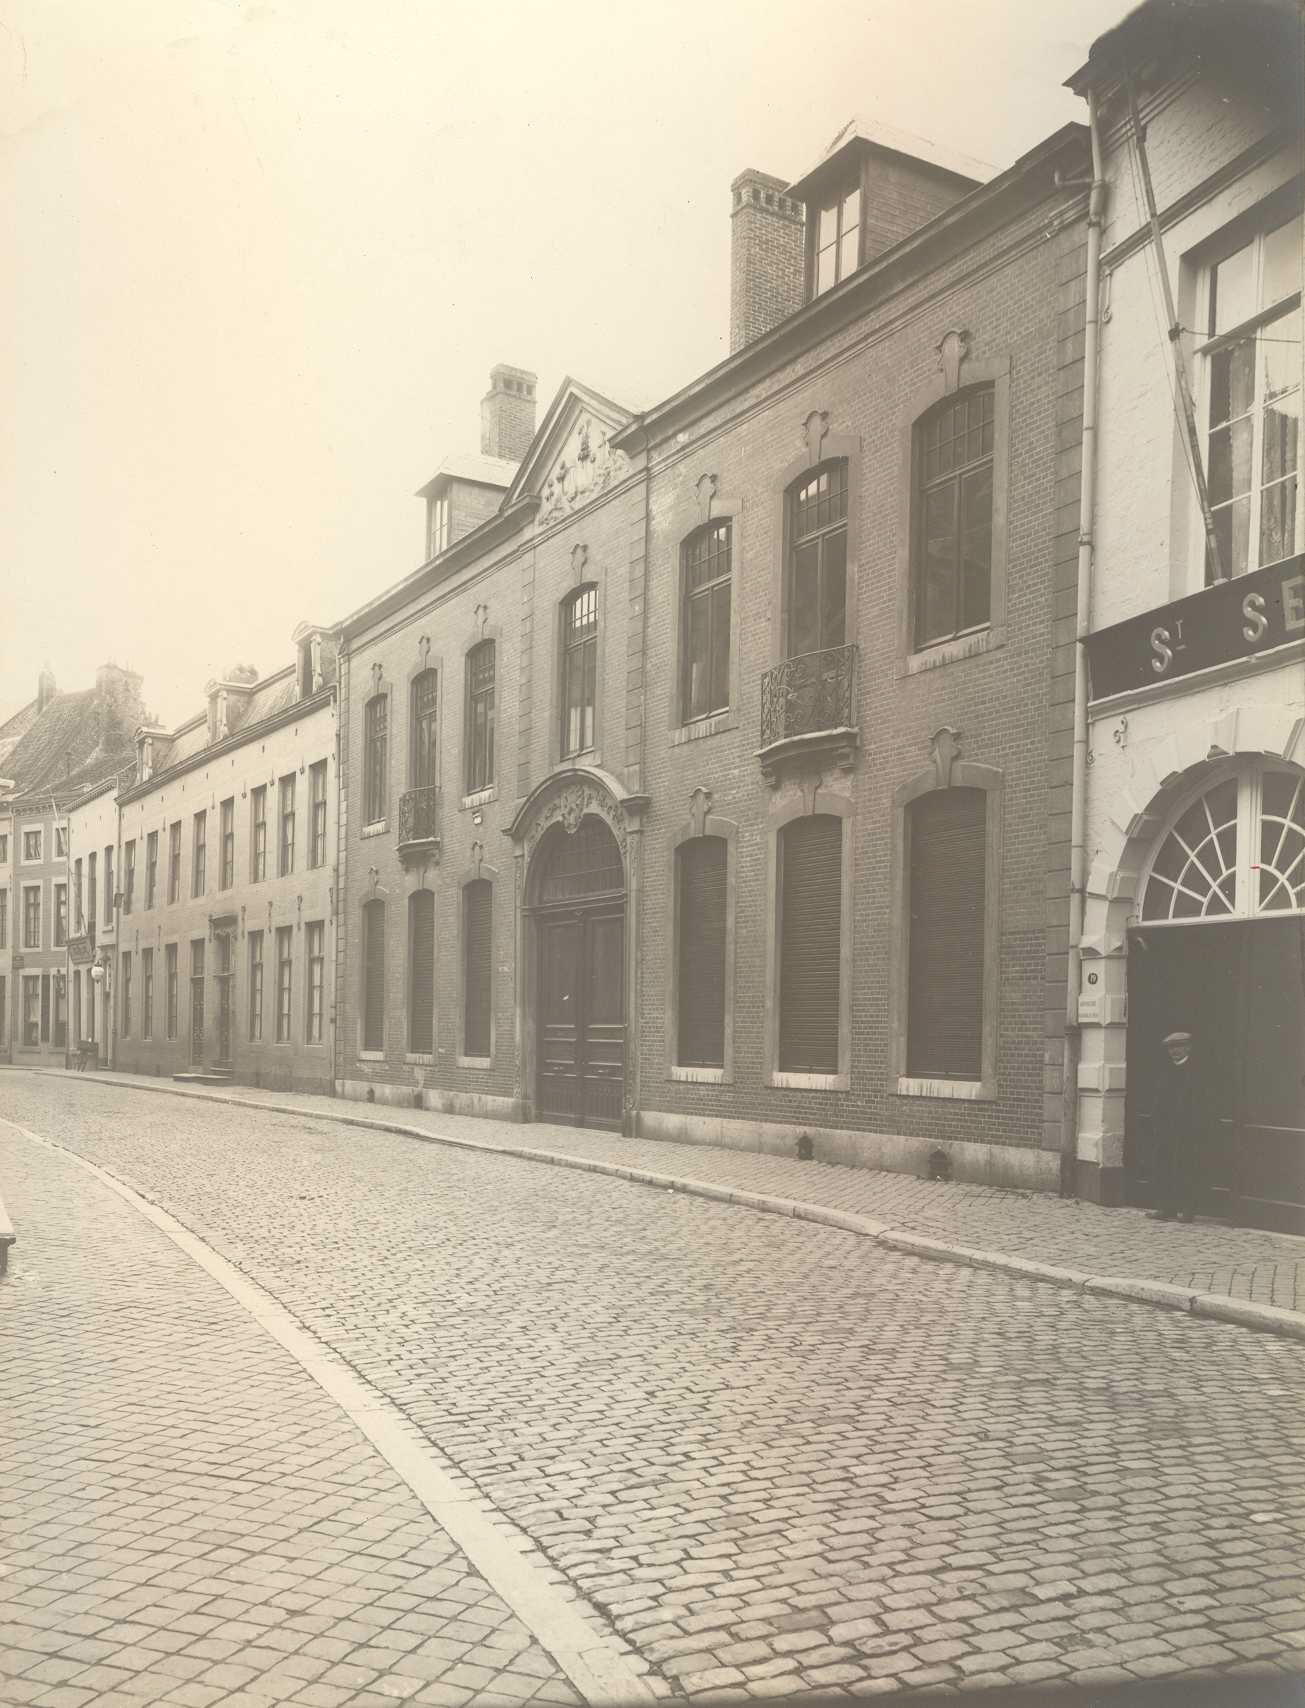 Breedestraat 17 1912.jpeg